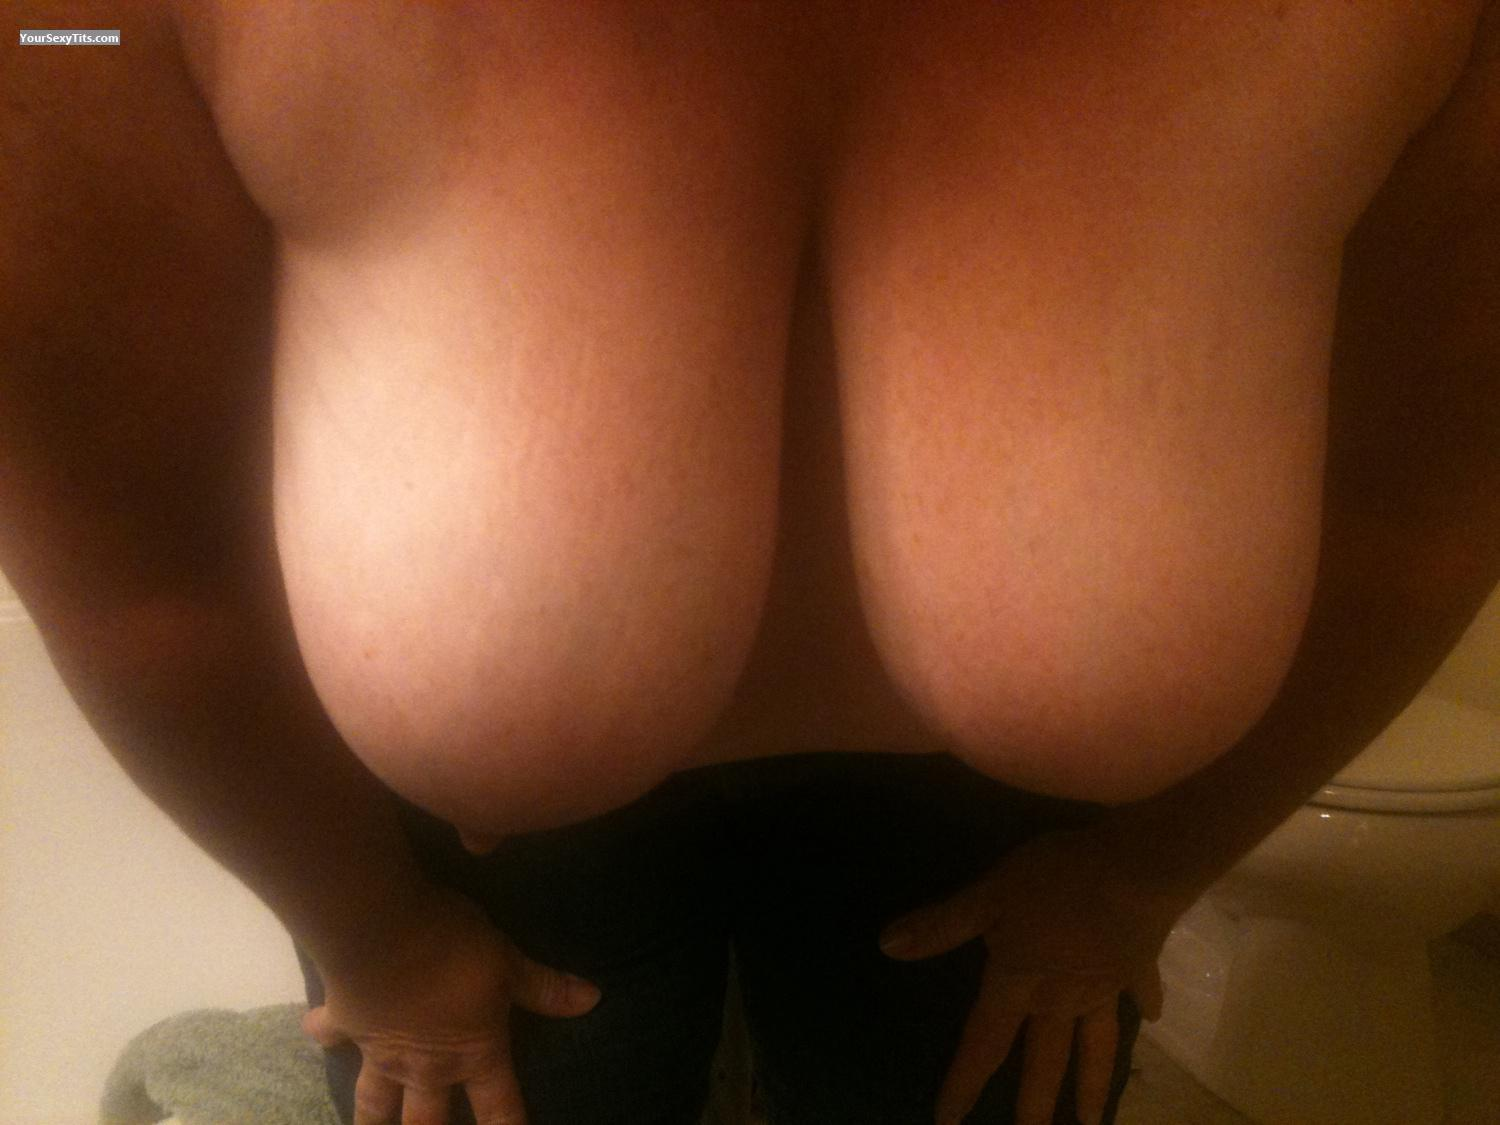 Tit Flash: Very Big Tits By IPhone - Cavemaneforboobs from United States